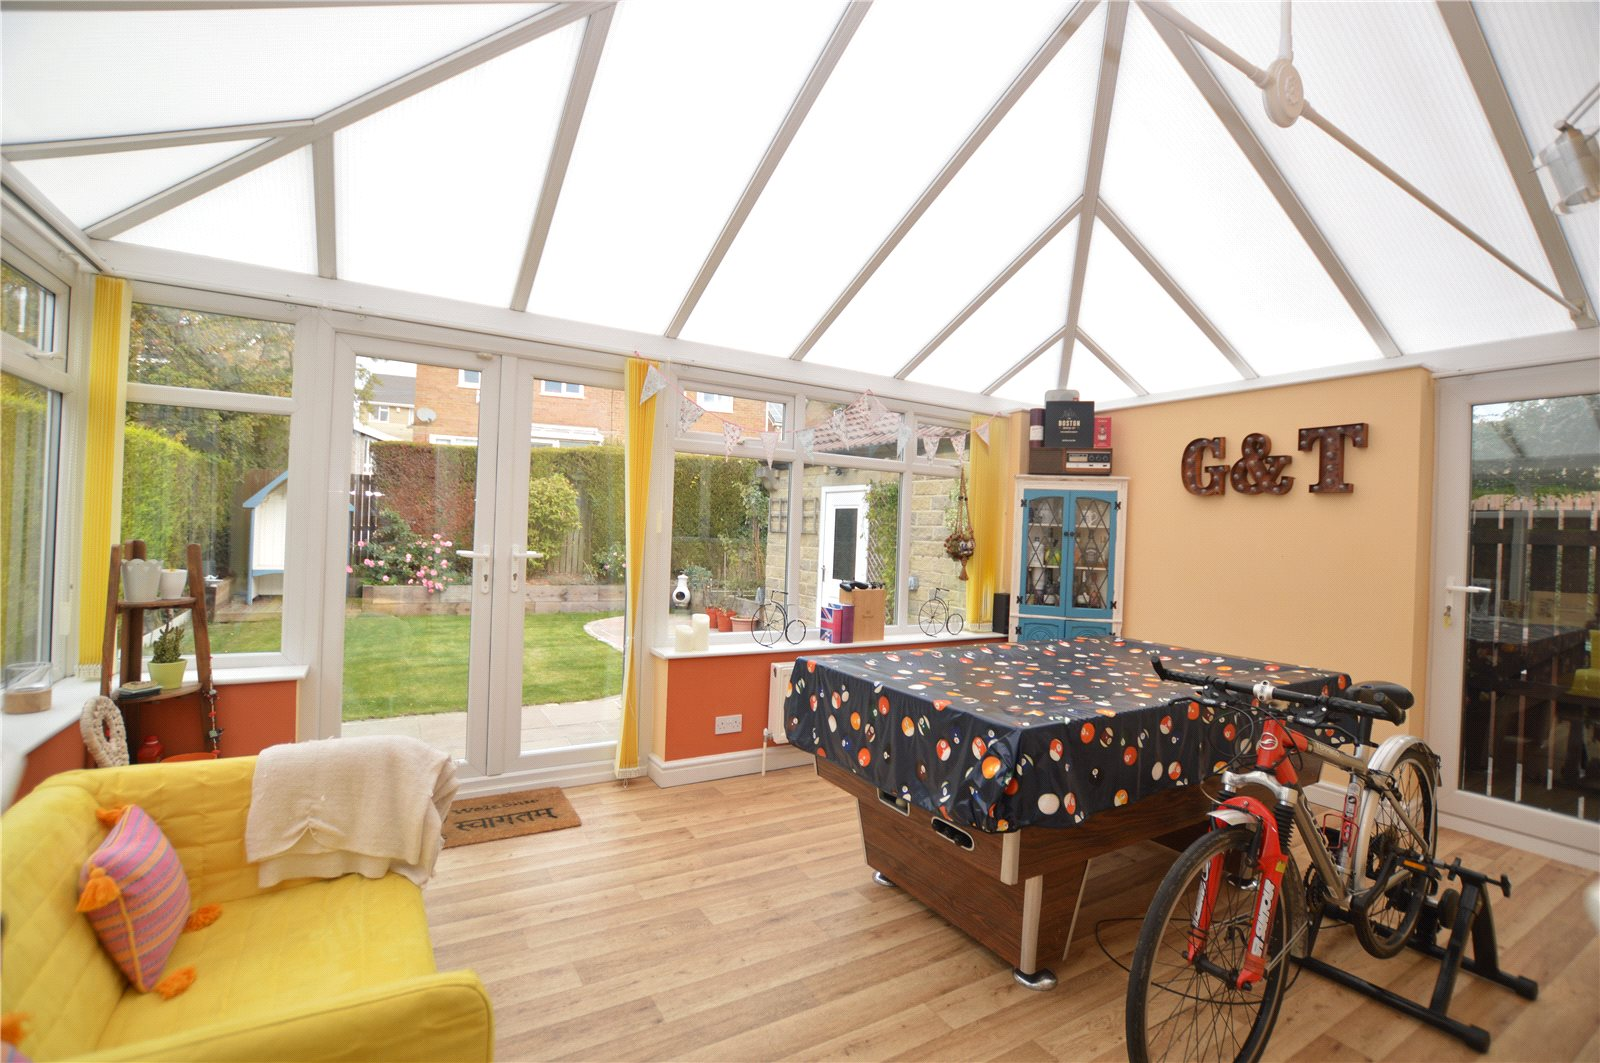 property for sale in Pudsey, interior conservatory dining area